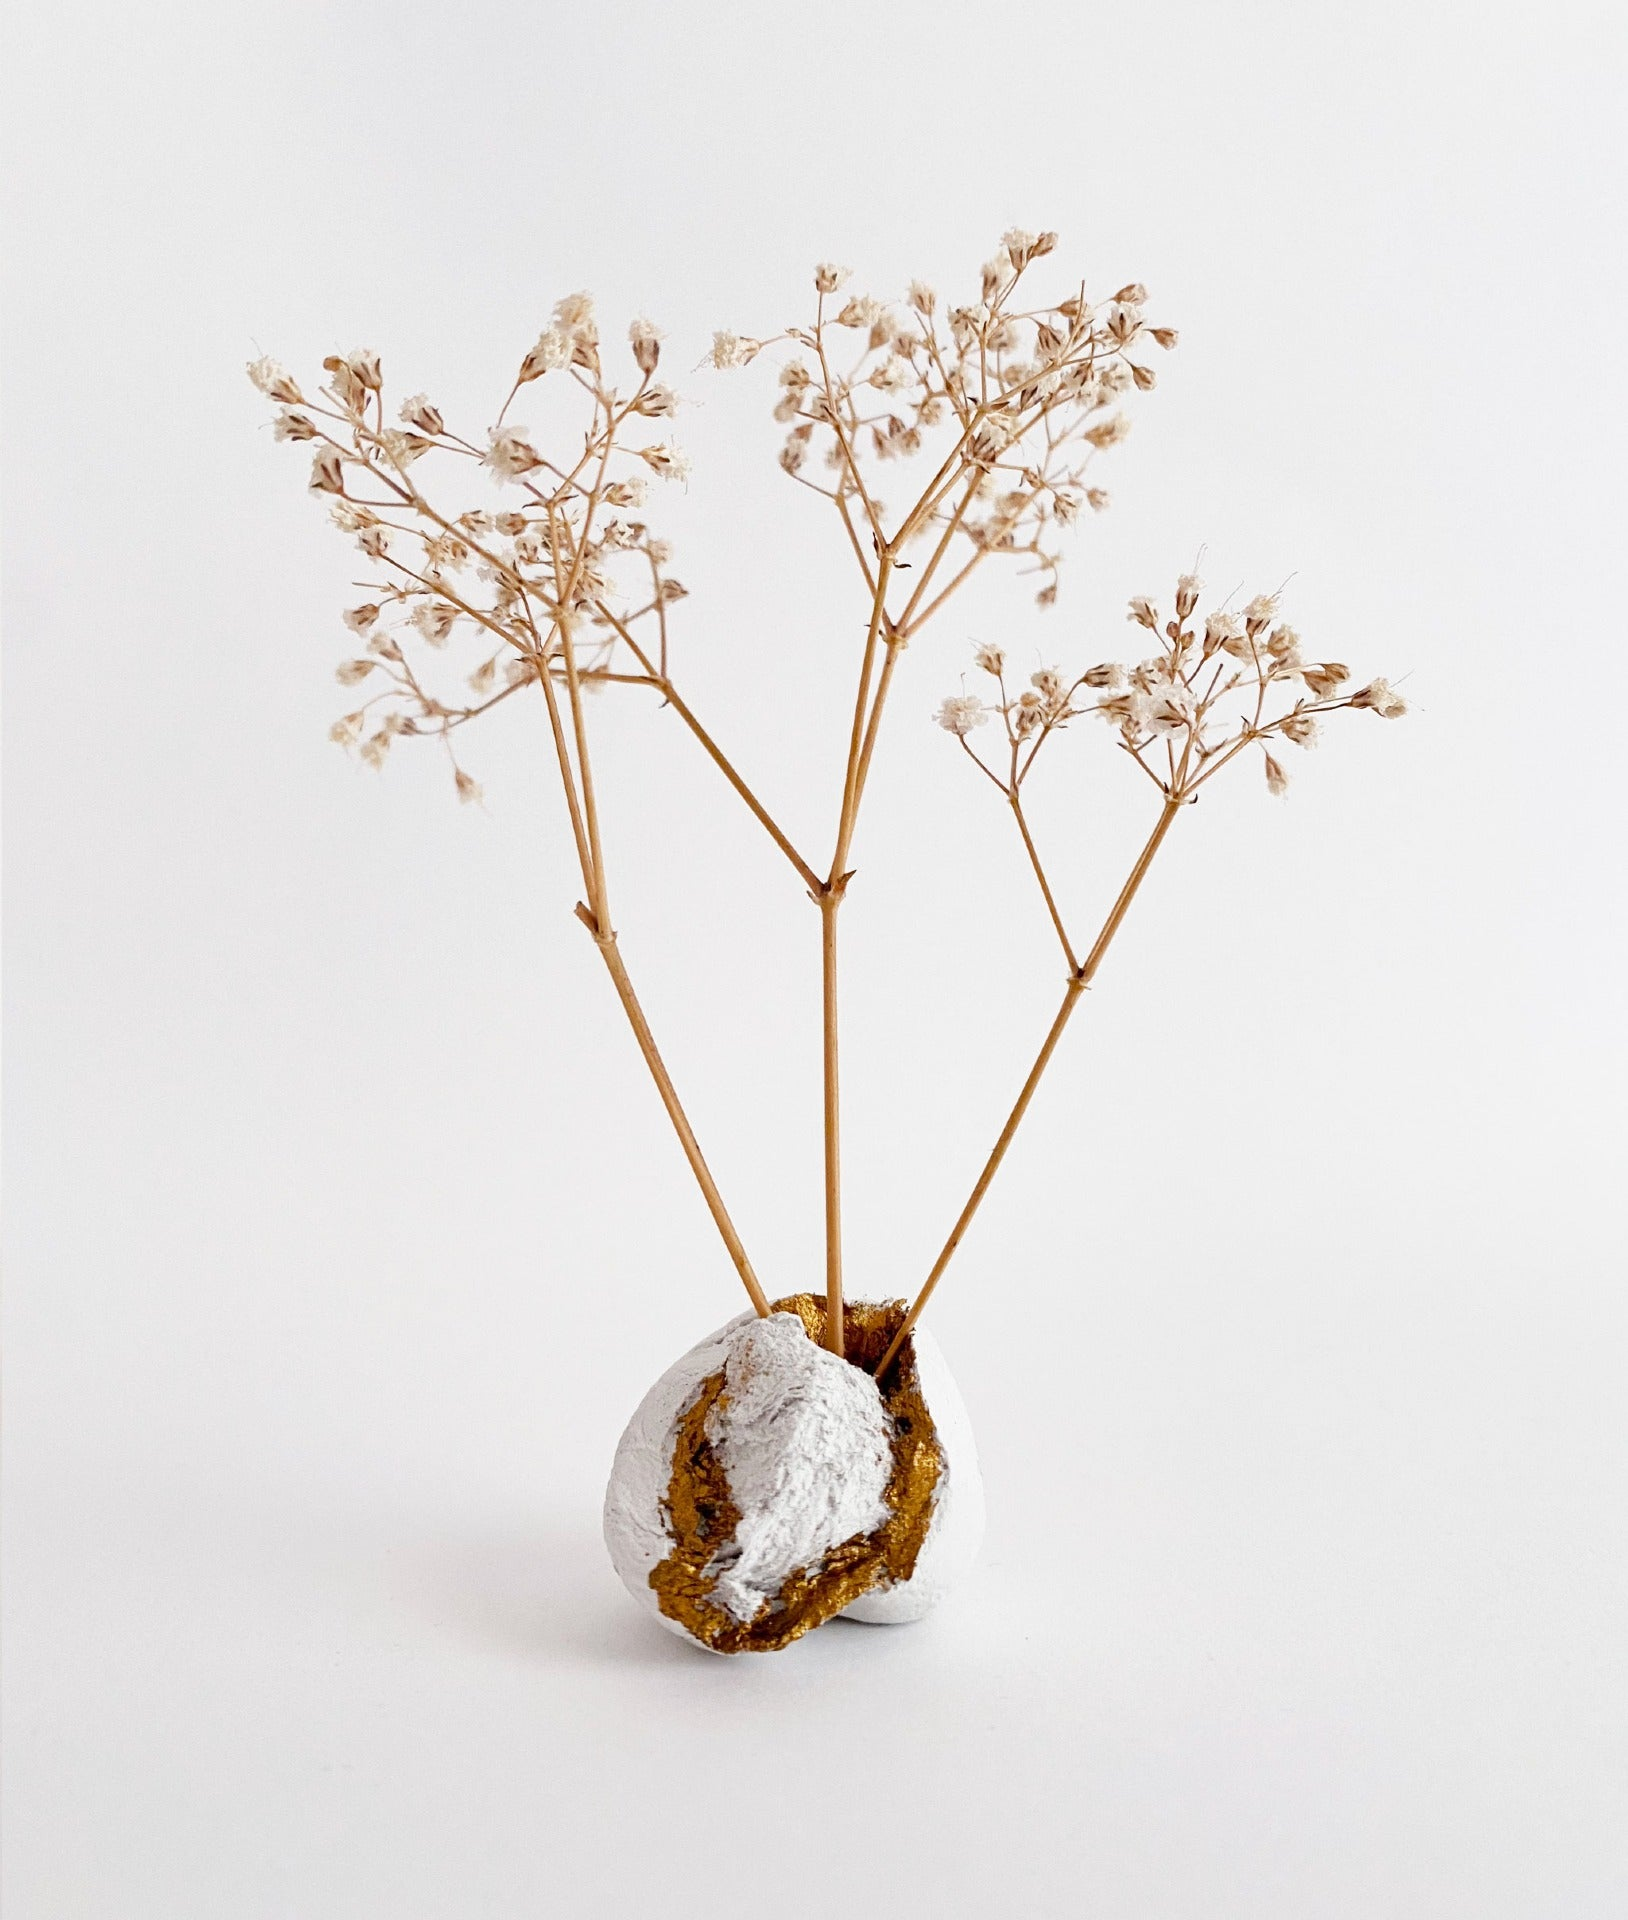 Small sculptures made from clay and flowers by Jazmin Garner,